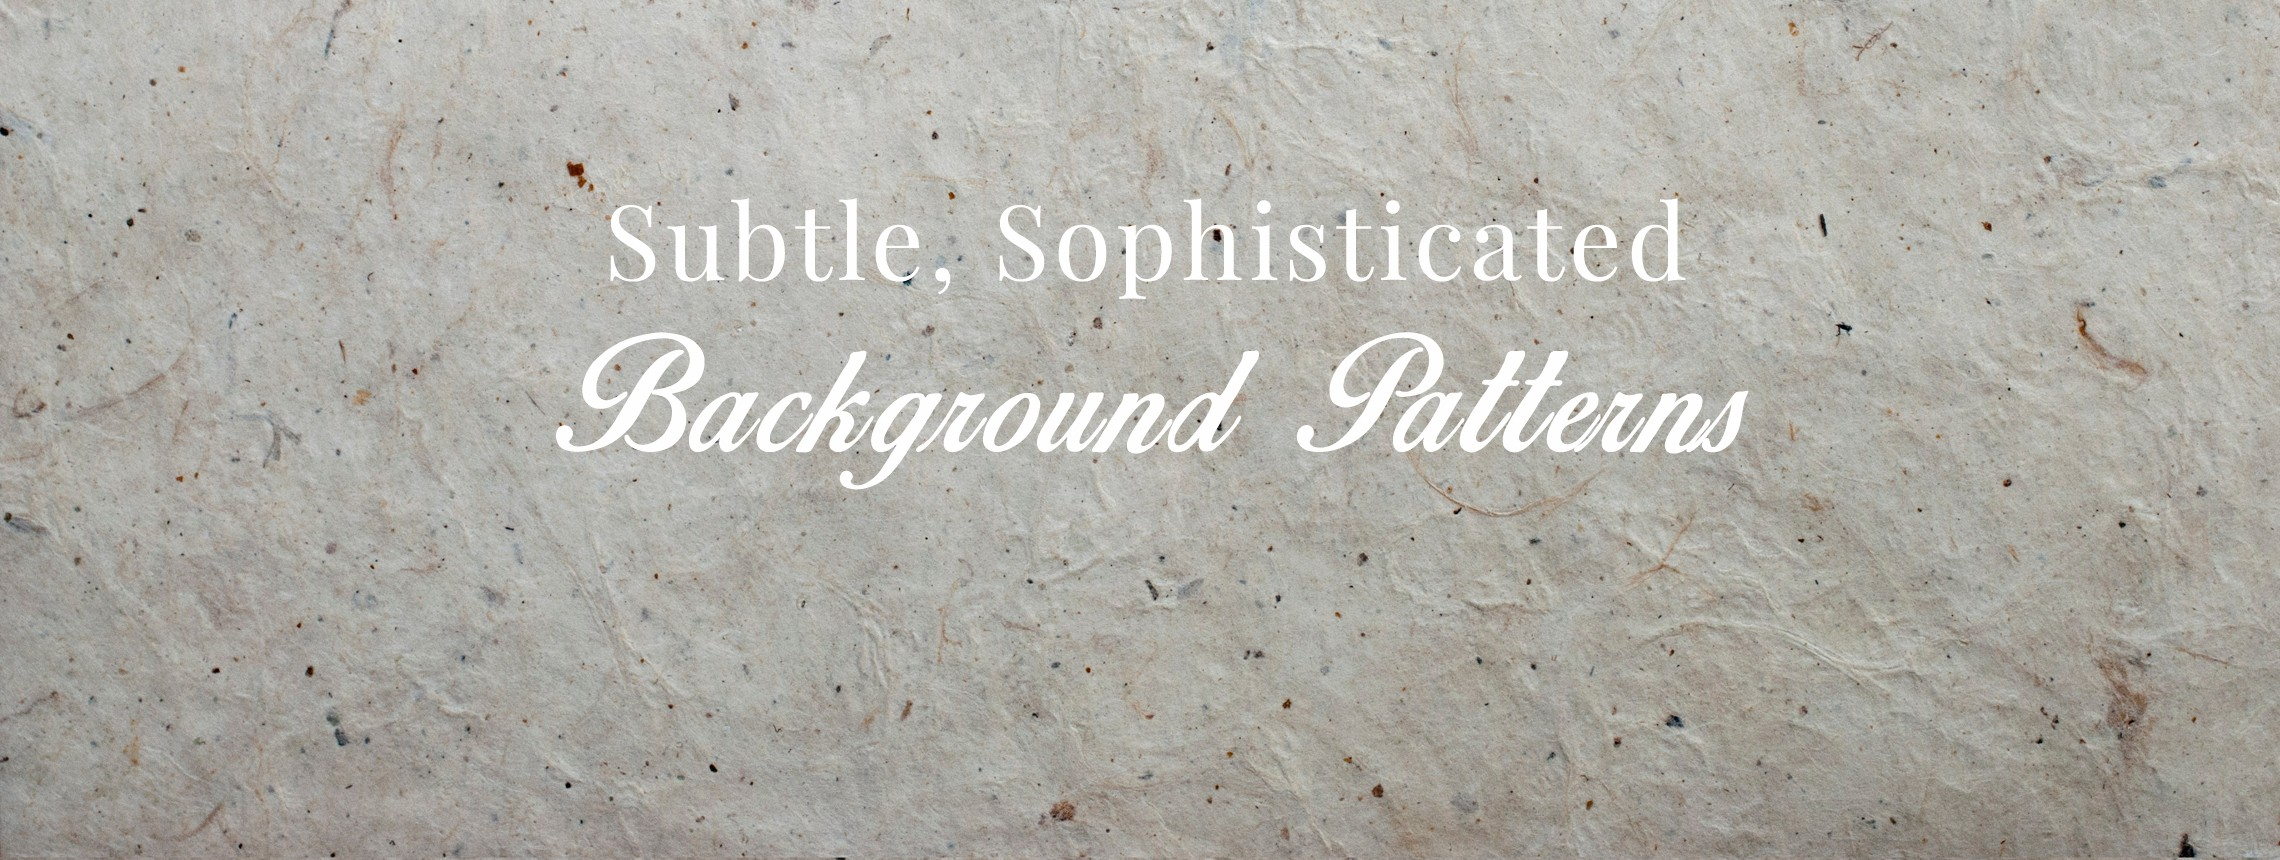 32 Background Patterns That Are Subtle, Seamless, and Sophisticated